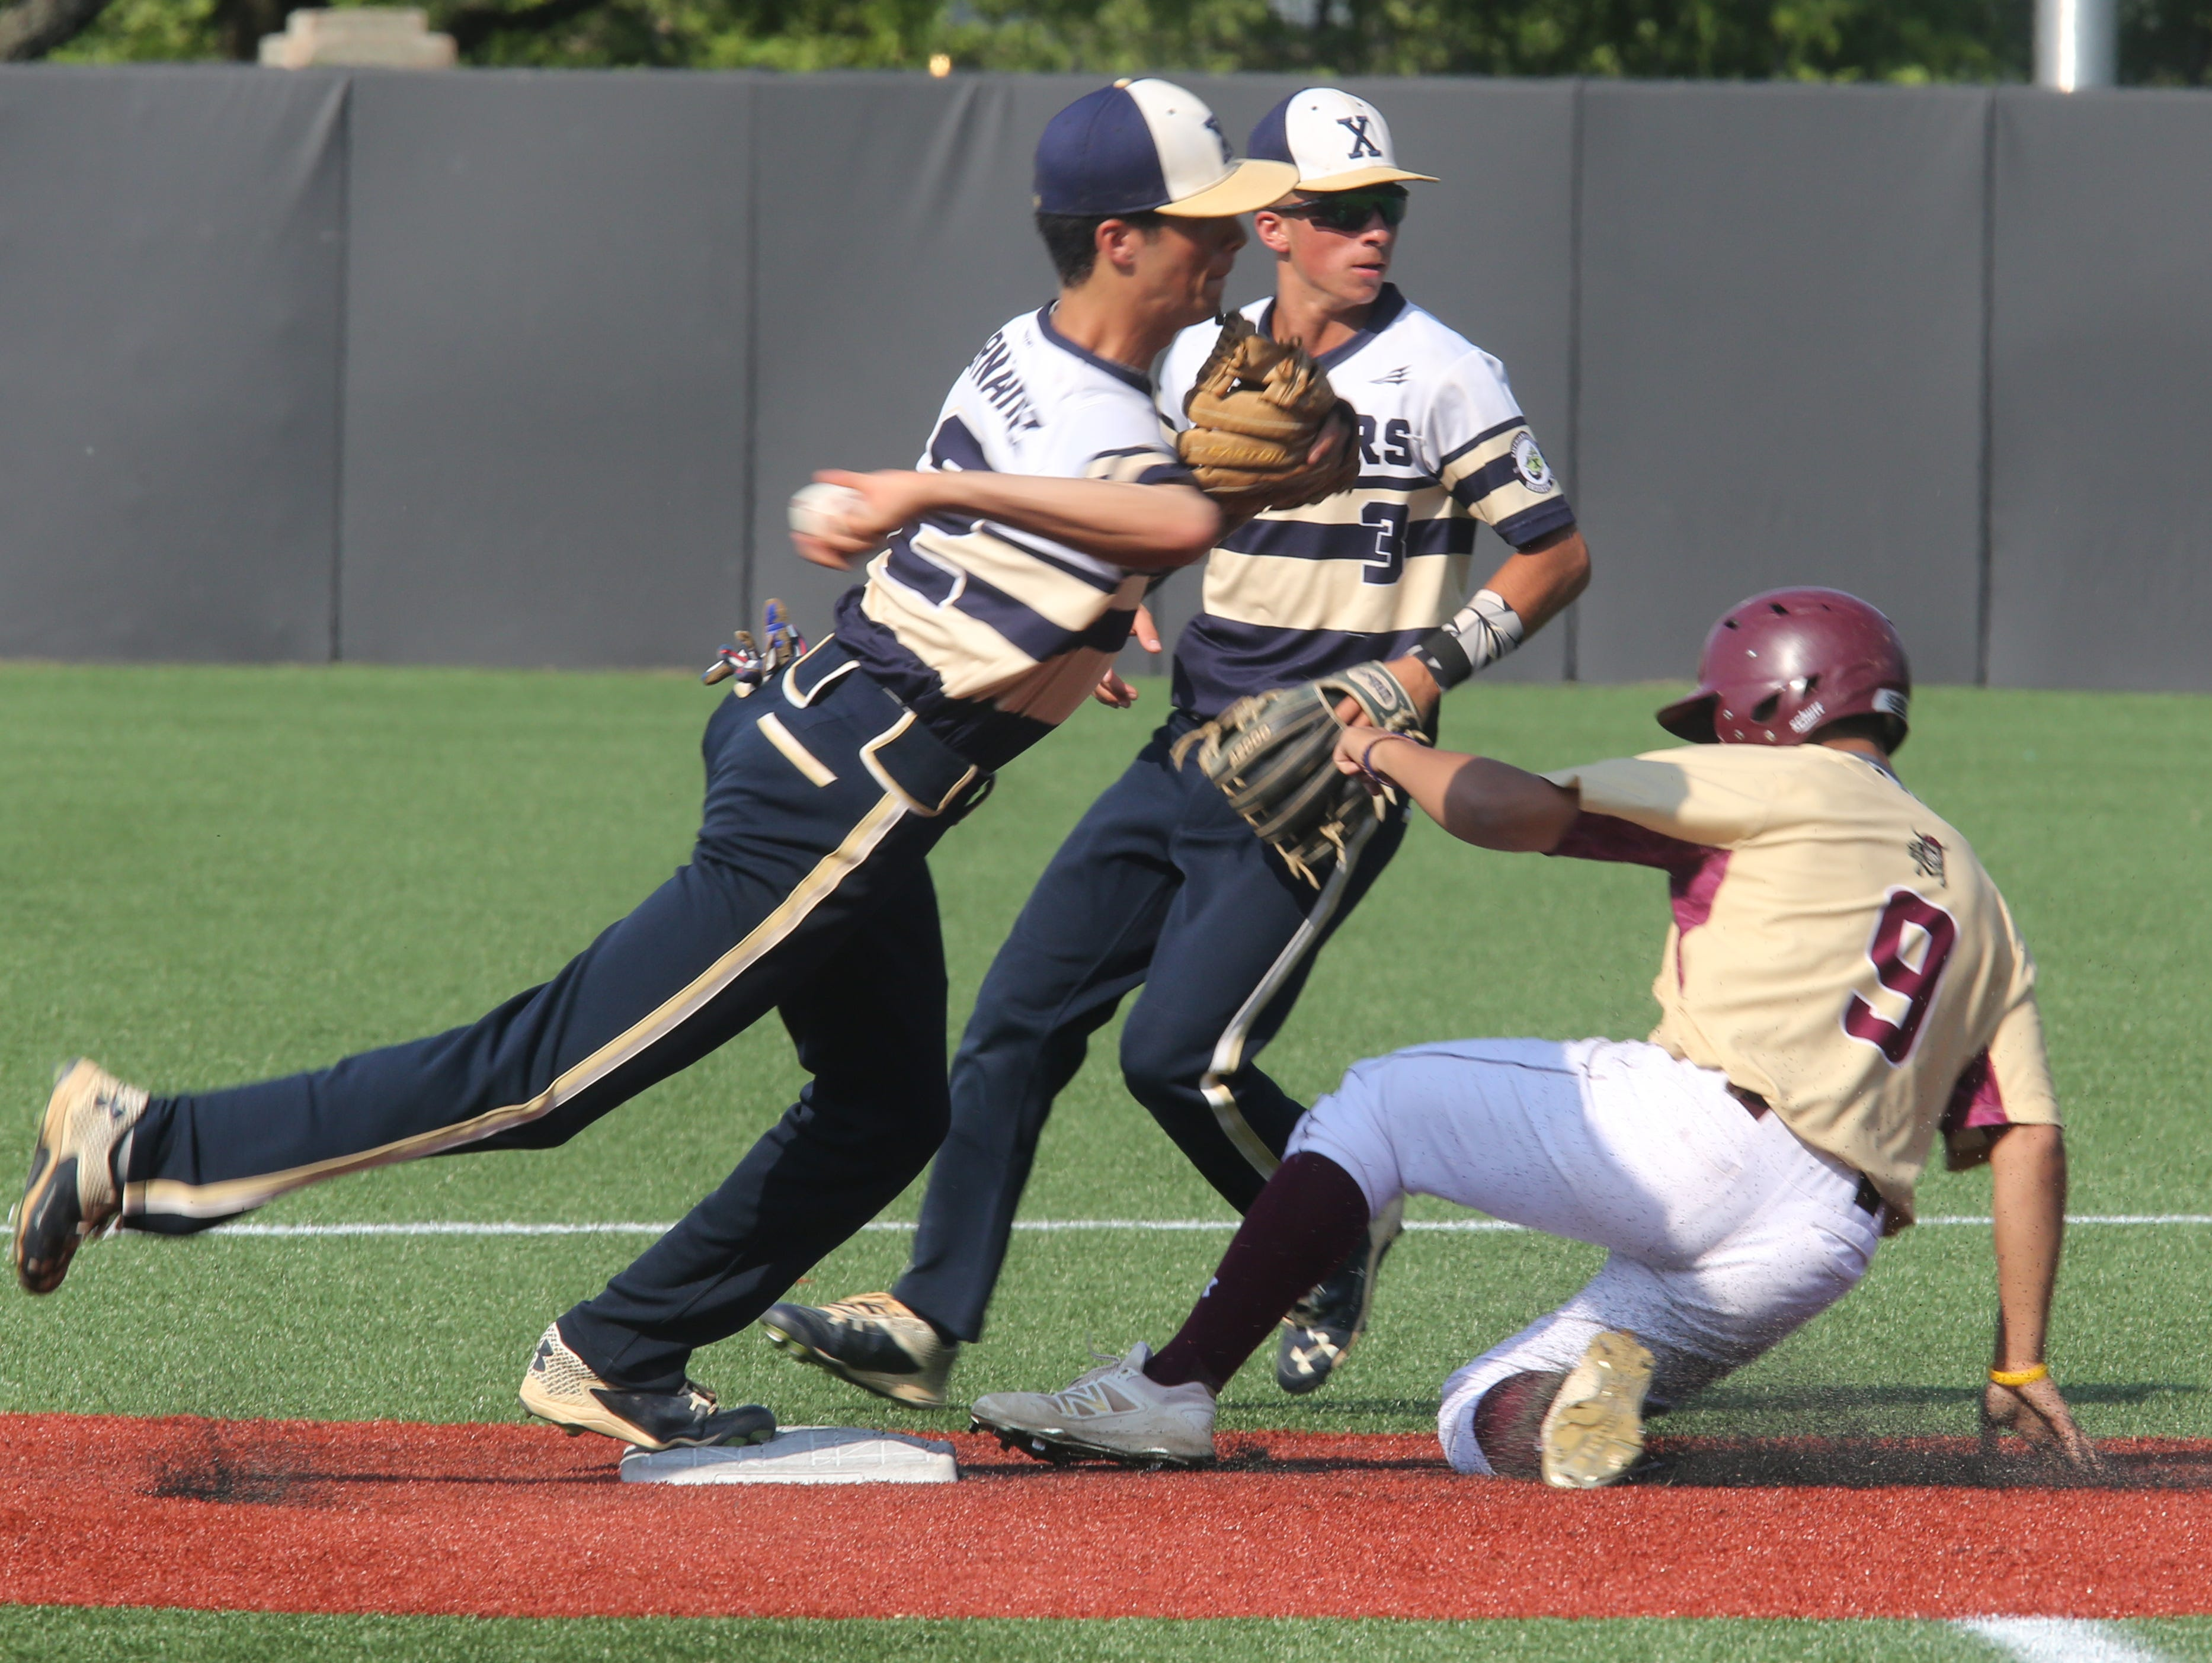 Iona Prep's Domenico Bruzzese (9) is tagged out on second during CHSAA baseball playoffs at Fordham University in Bronx on June 1, 2016. Iona Prep defeats Xaverian 4-0.